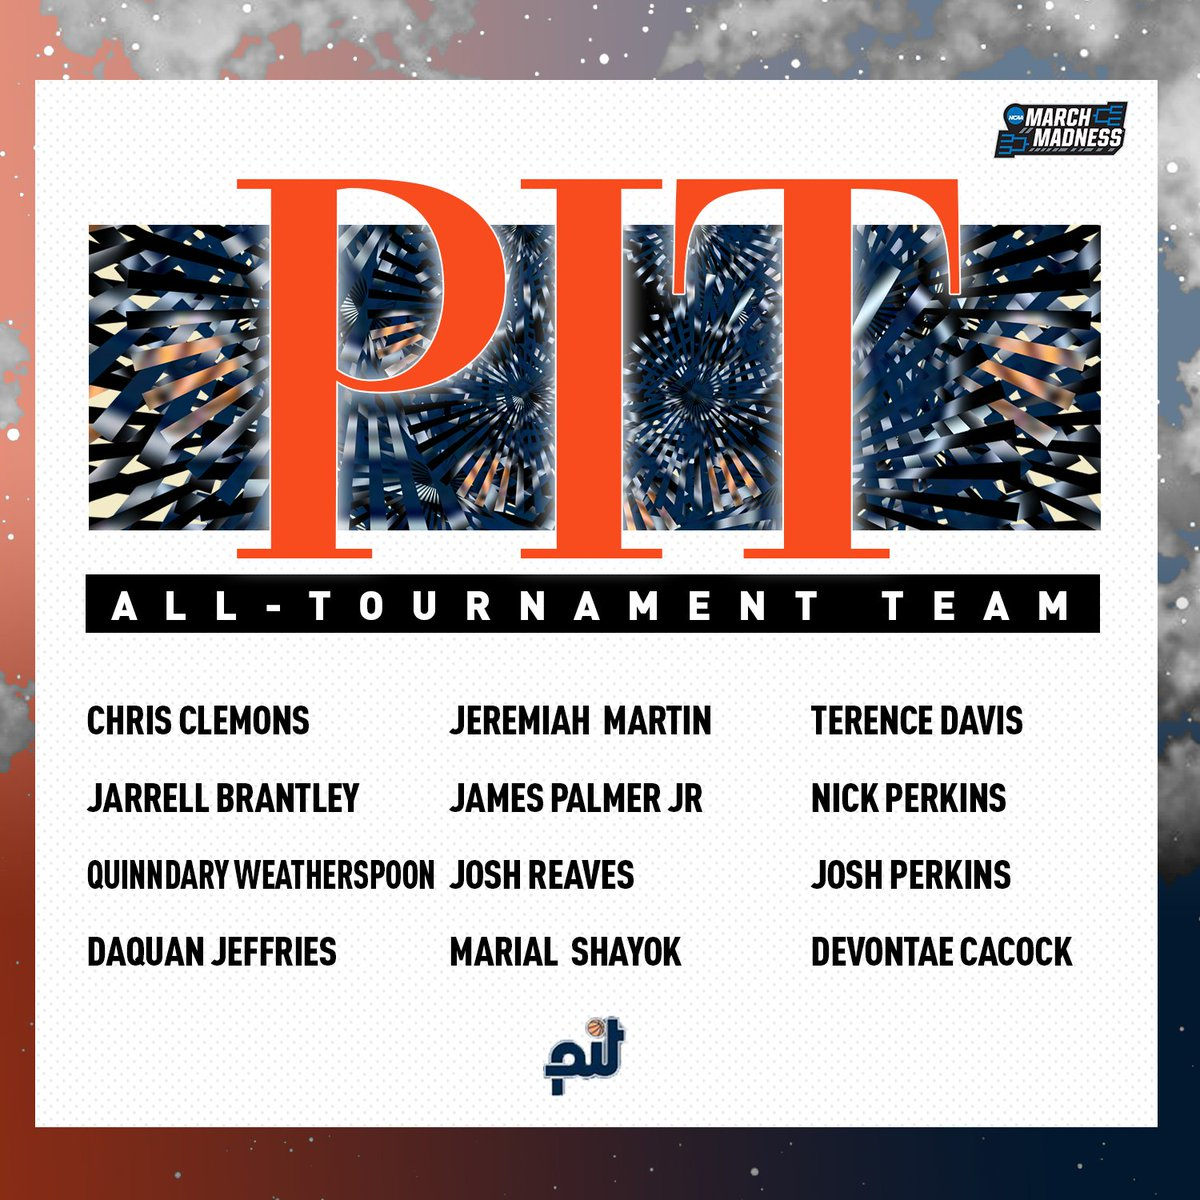 Congrats to these seniors on earning a spot on the 2019 @PIT_Basketball All-Tournament Team! <br>http://pic.twitter.com/7vXjga335J